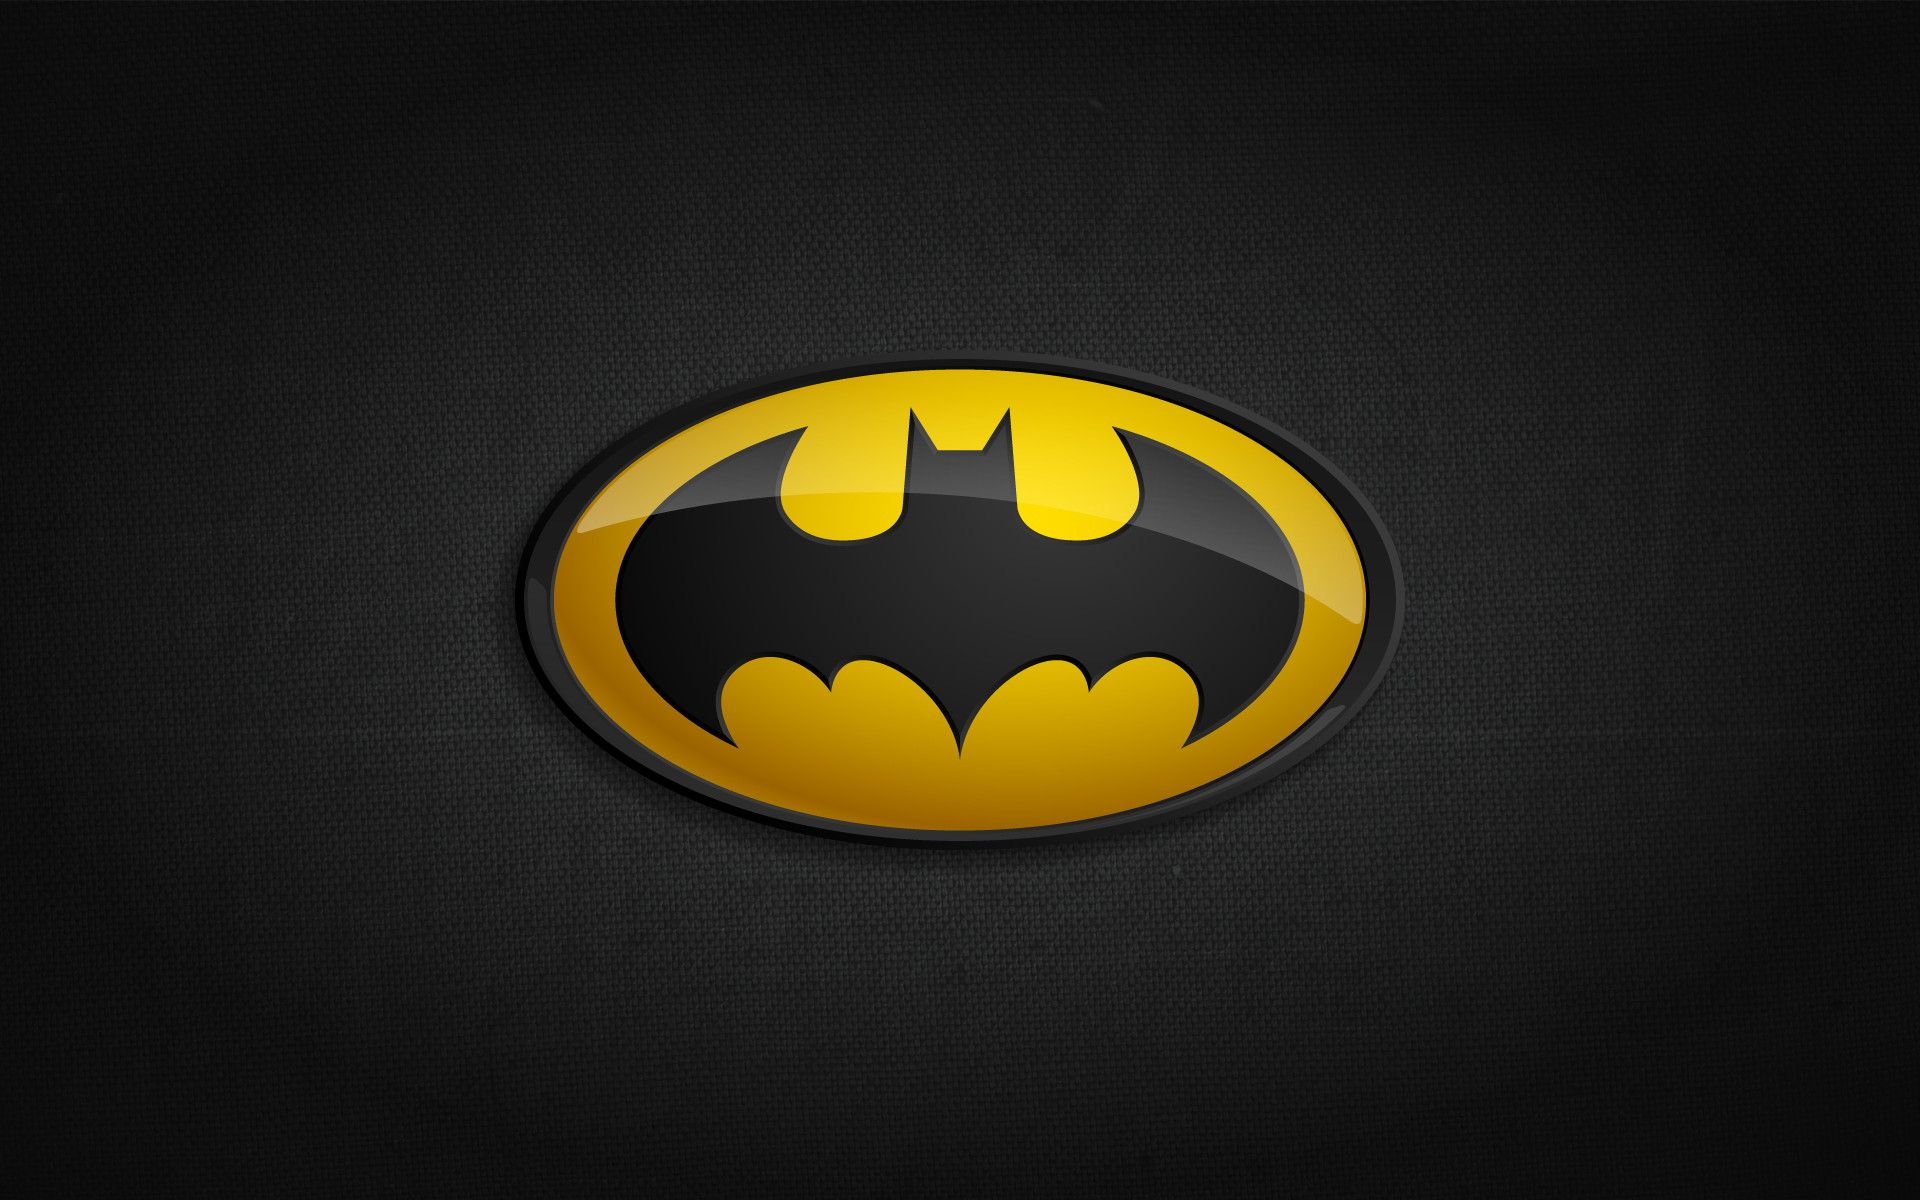 Batman Wallpapers Full Hd Wallpaper Batman Wallpaper Facebook